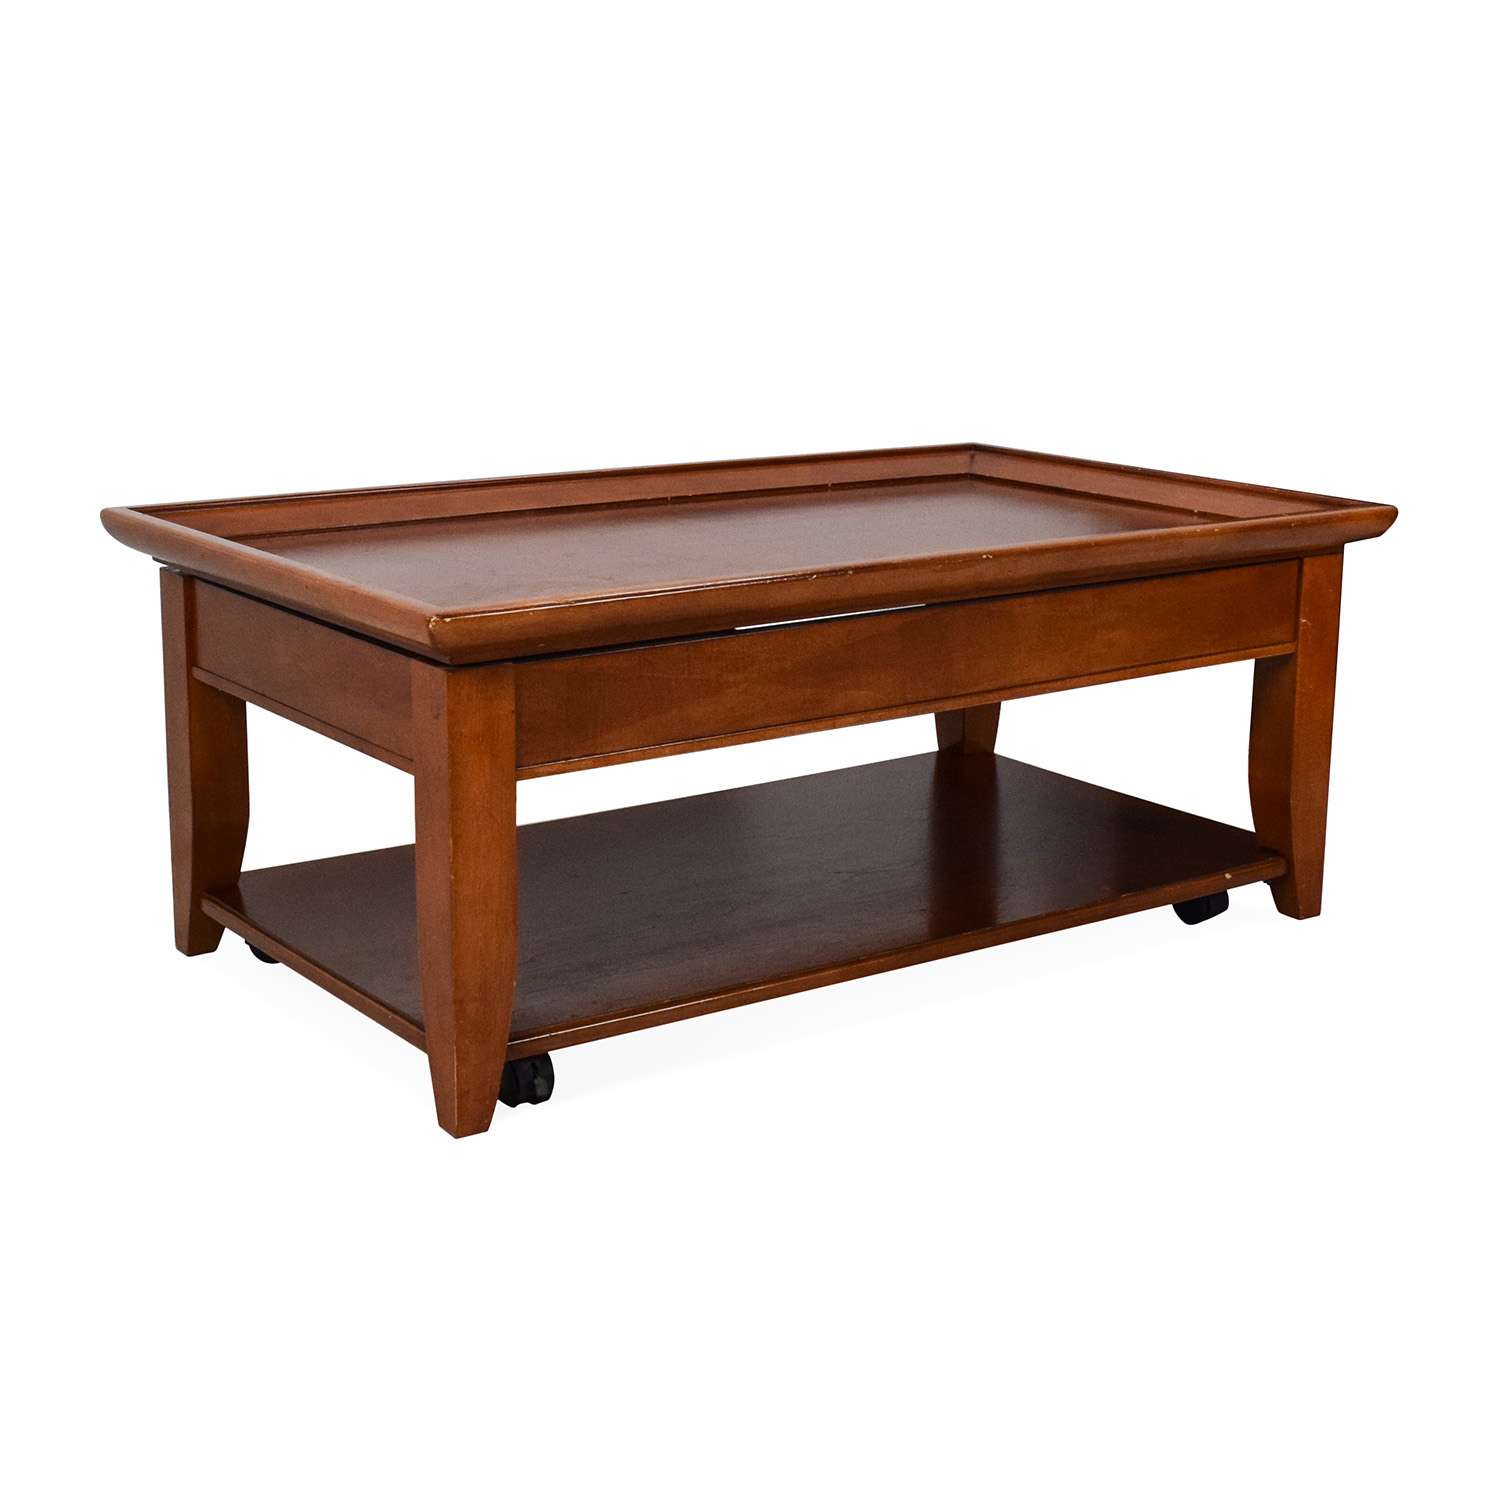 Lift Table Coffee Table: Lane Furniture Lane Furniture Lift-Top Coffee